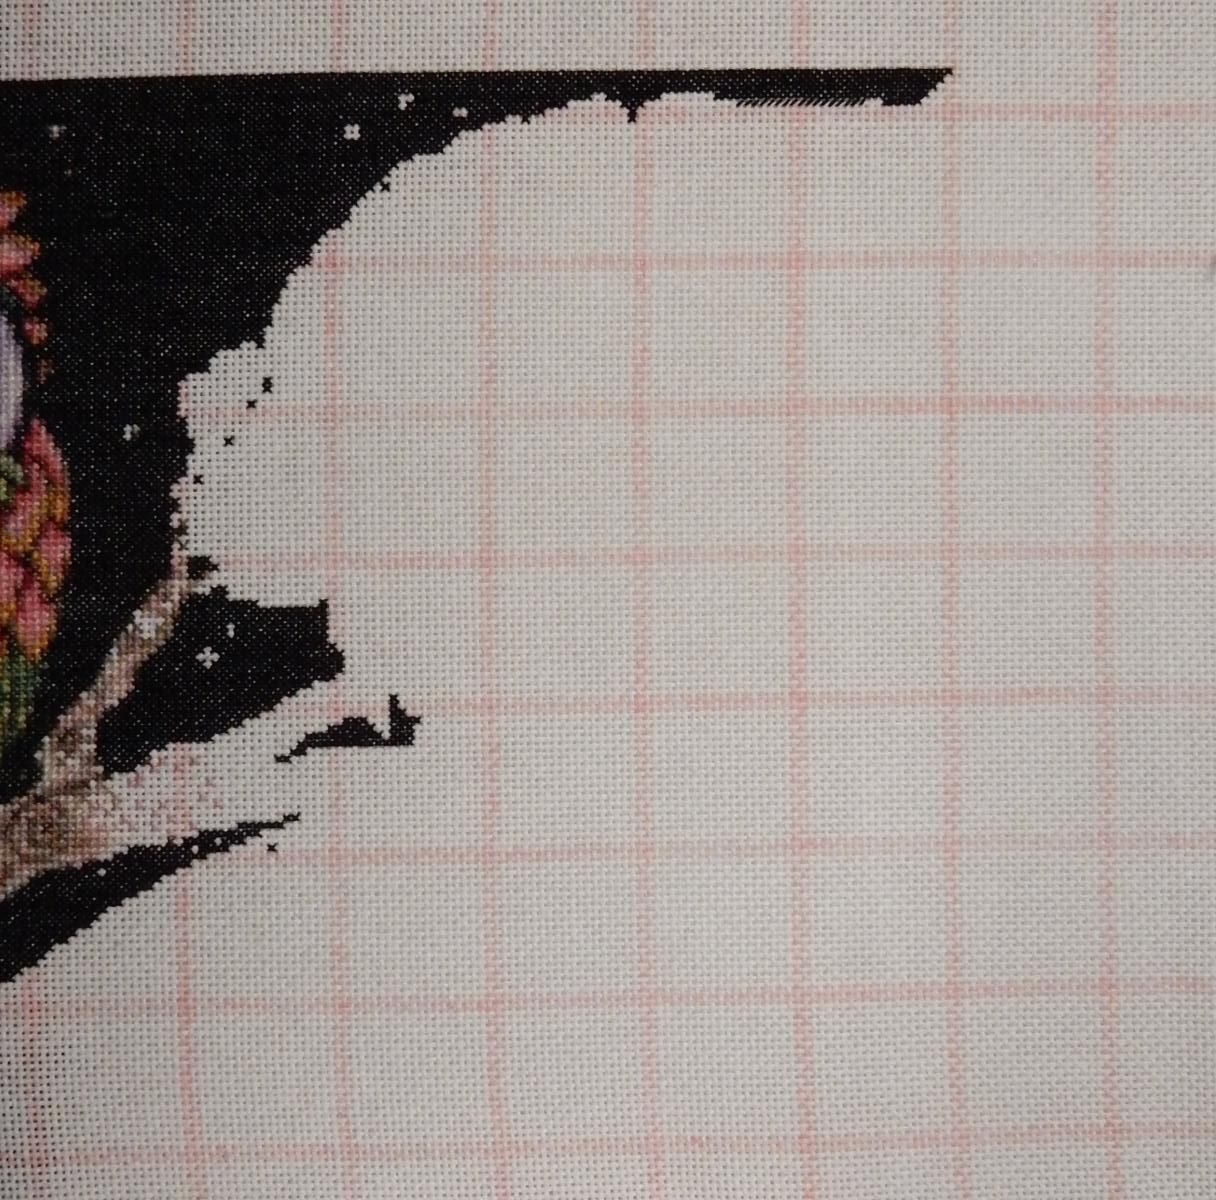 In progress picture of a counted cross-stitch pattern, visible is the negative space in the black background on top of the second owl.